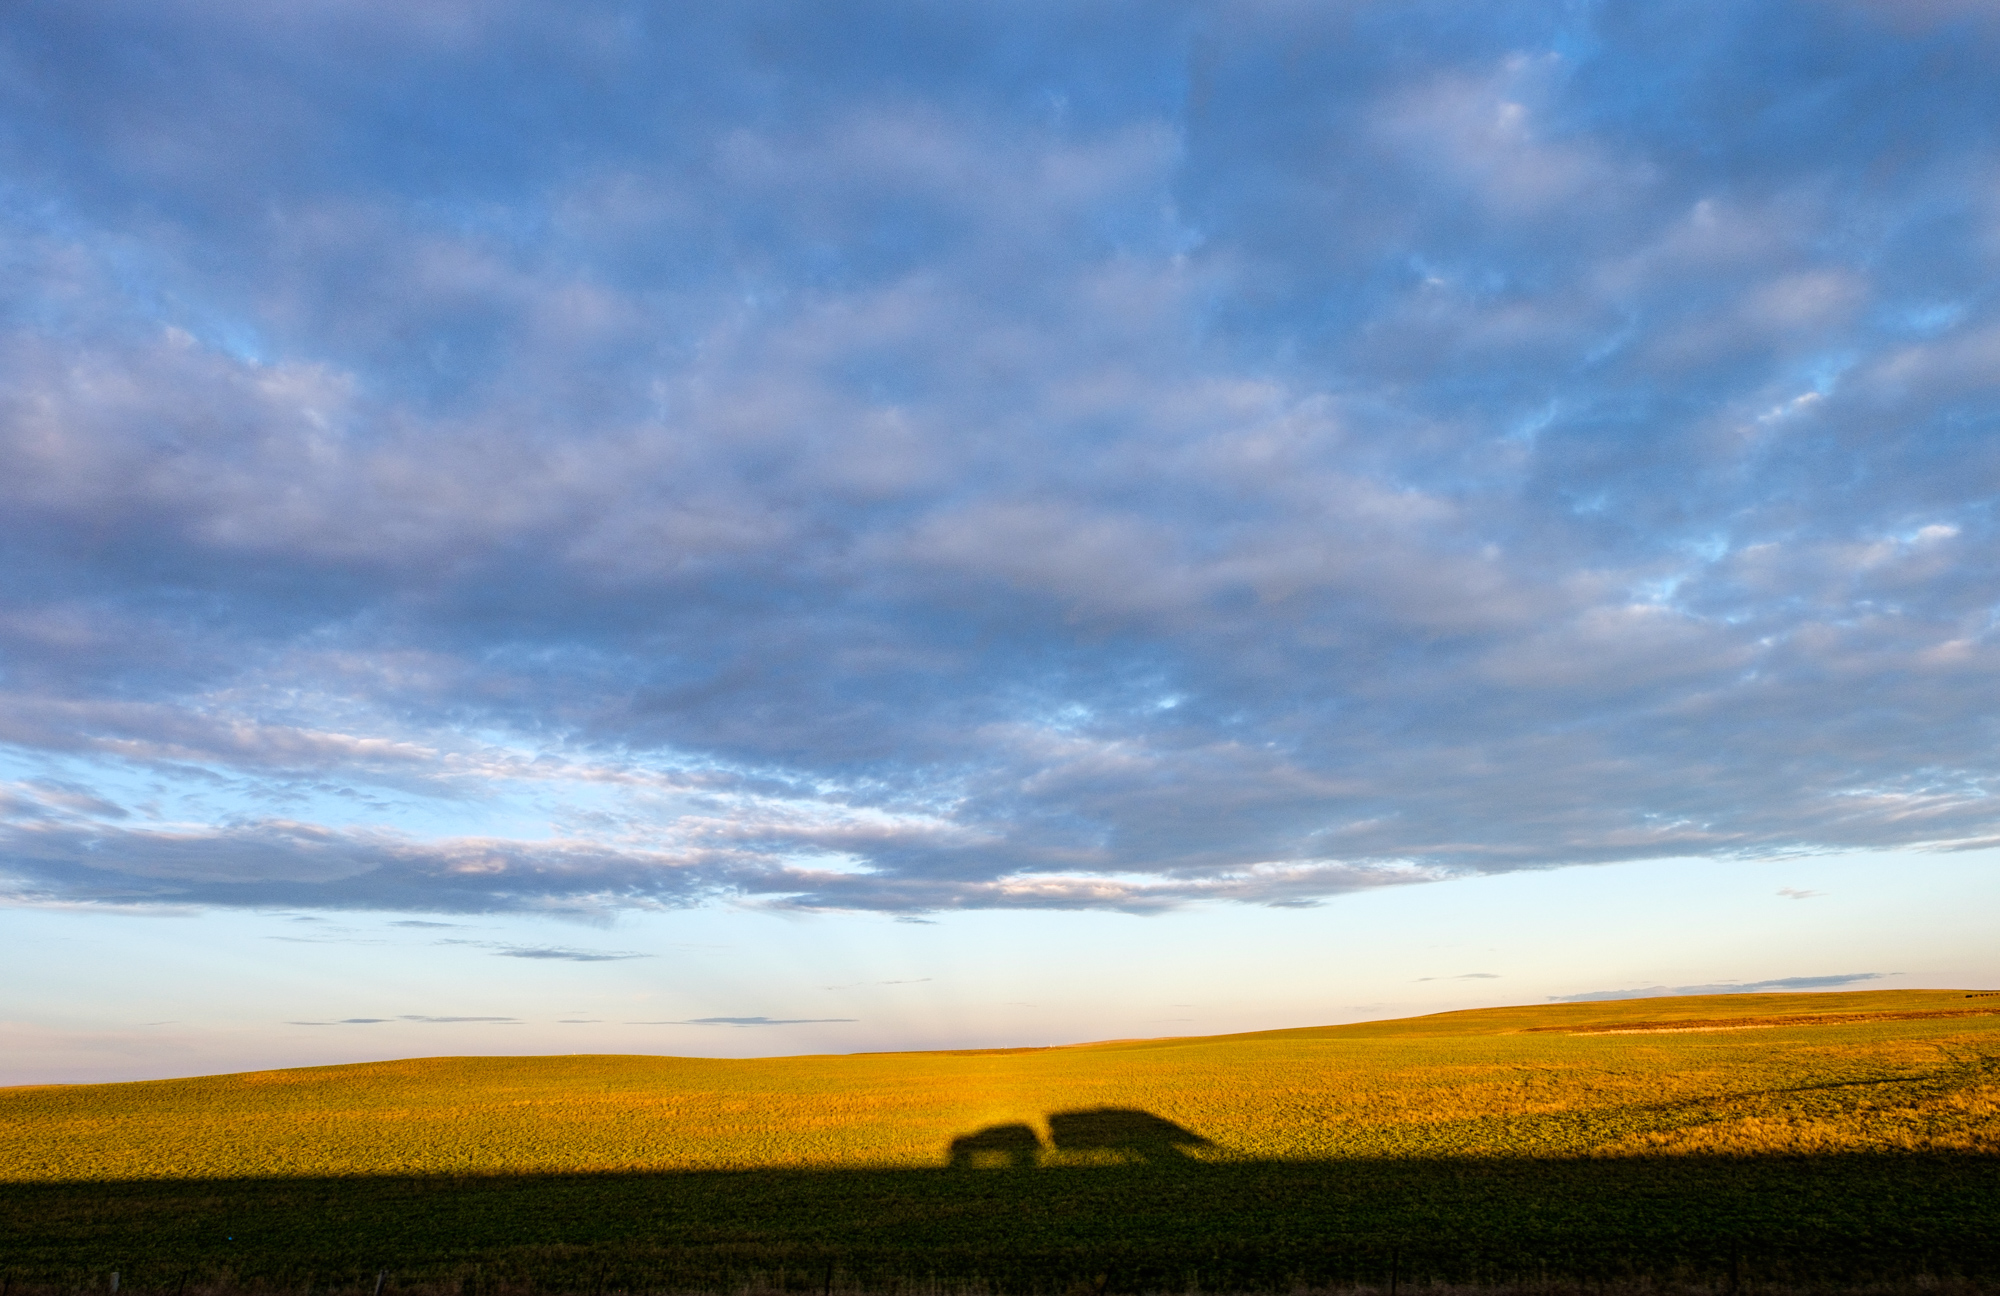 Shadow play with our Ford Expedition and Airstream against the rolling plains of North Dakota.